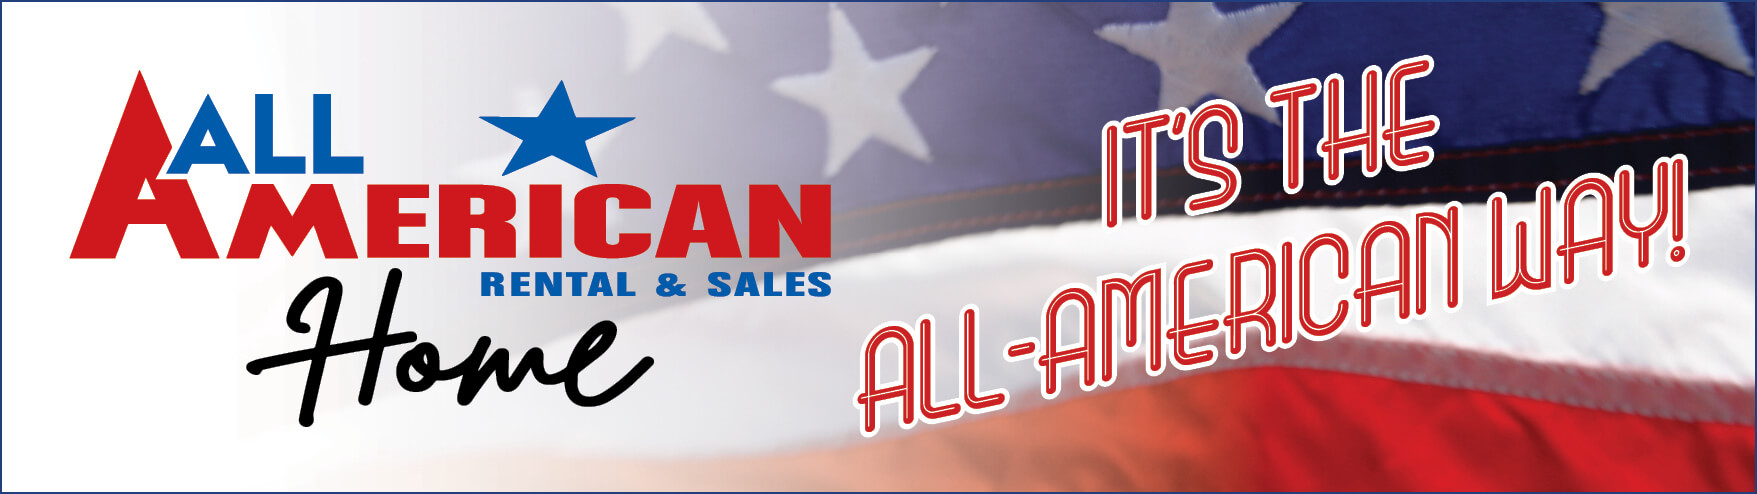 All American Monthly Deal